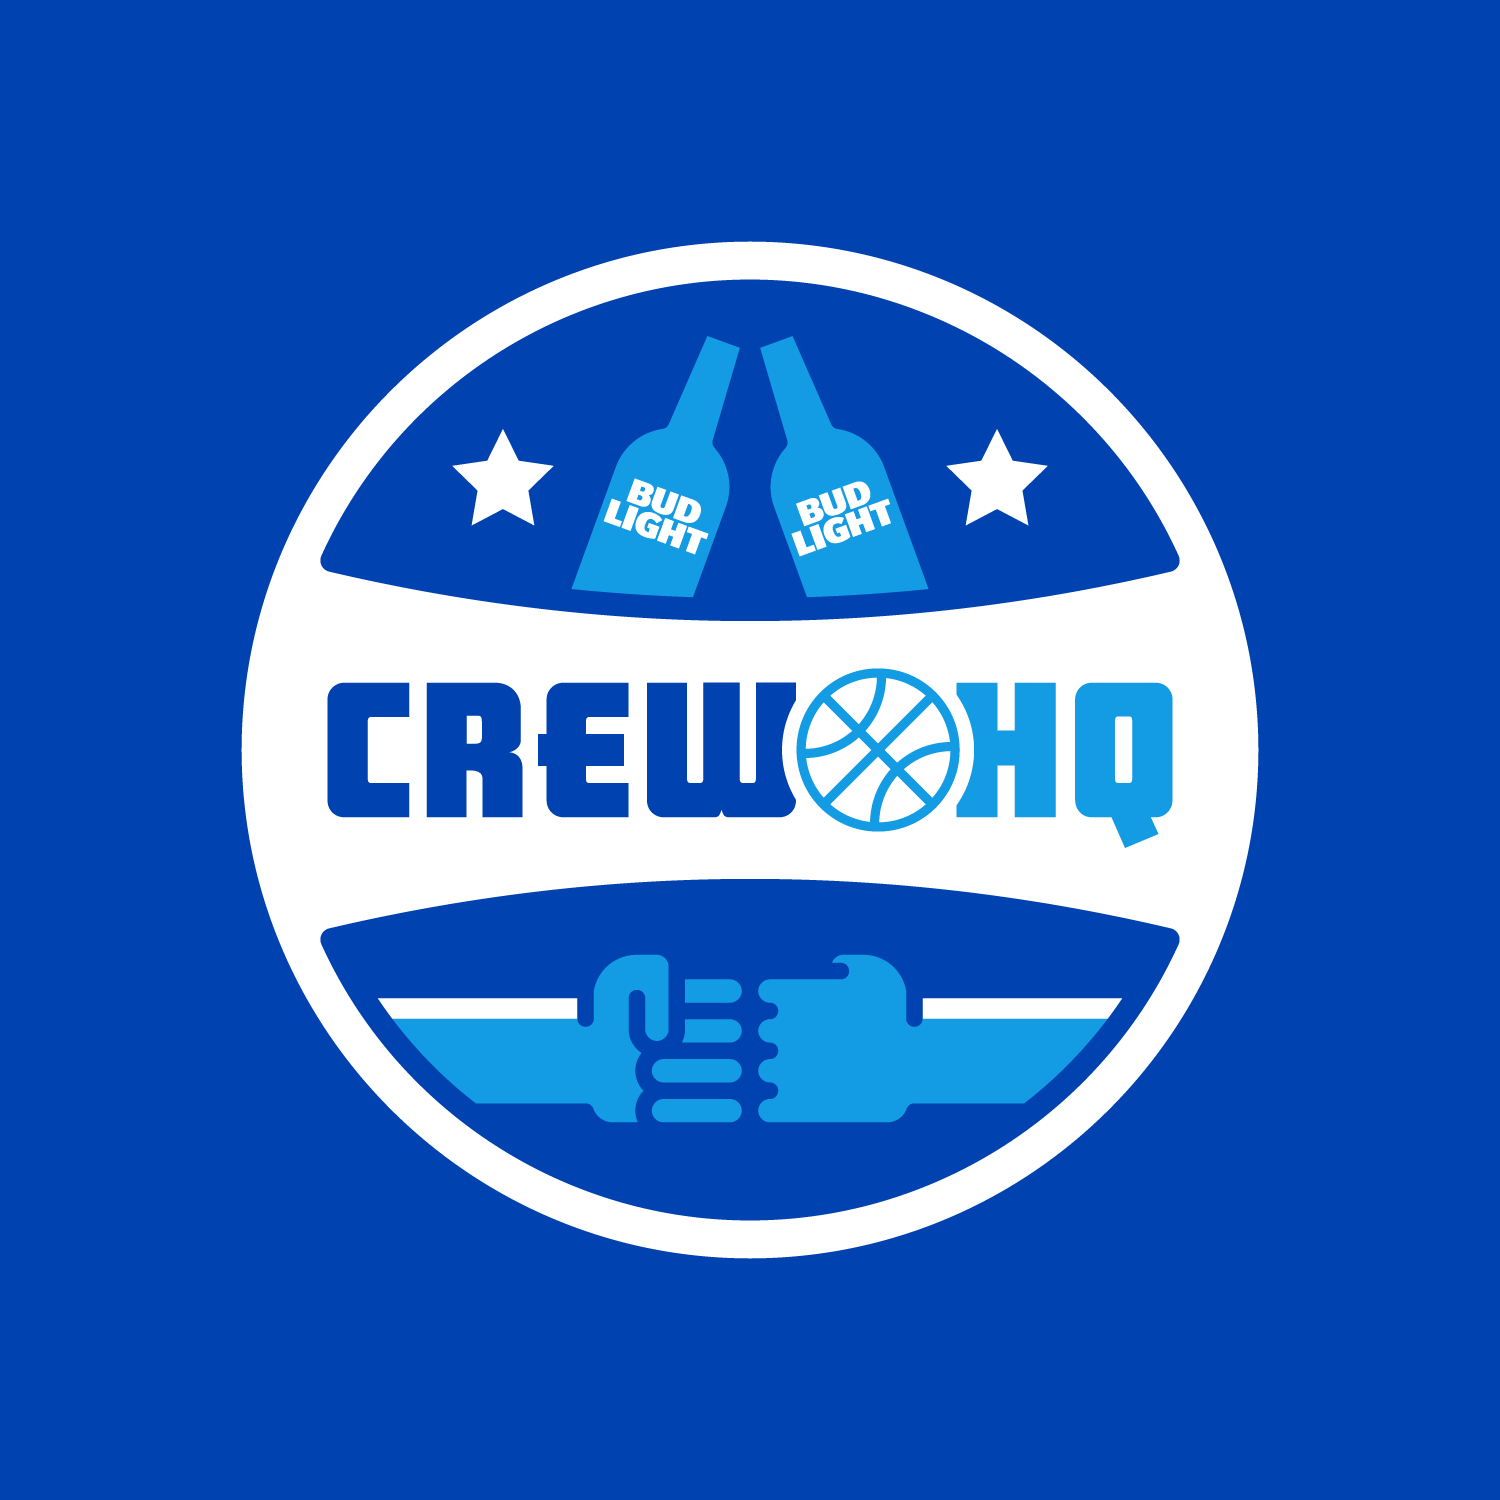 stein-bud-light-crew-2.png